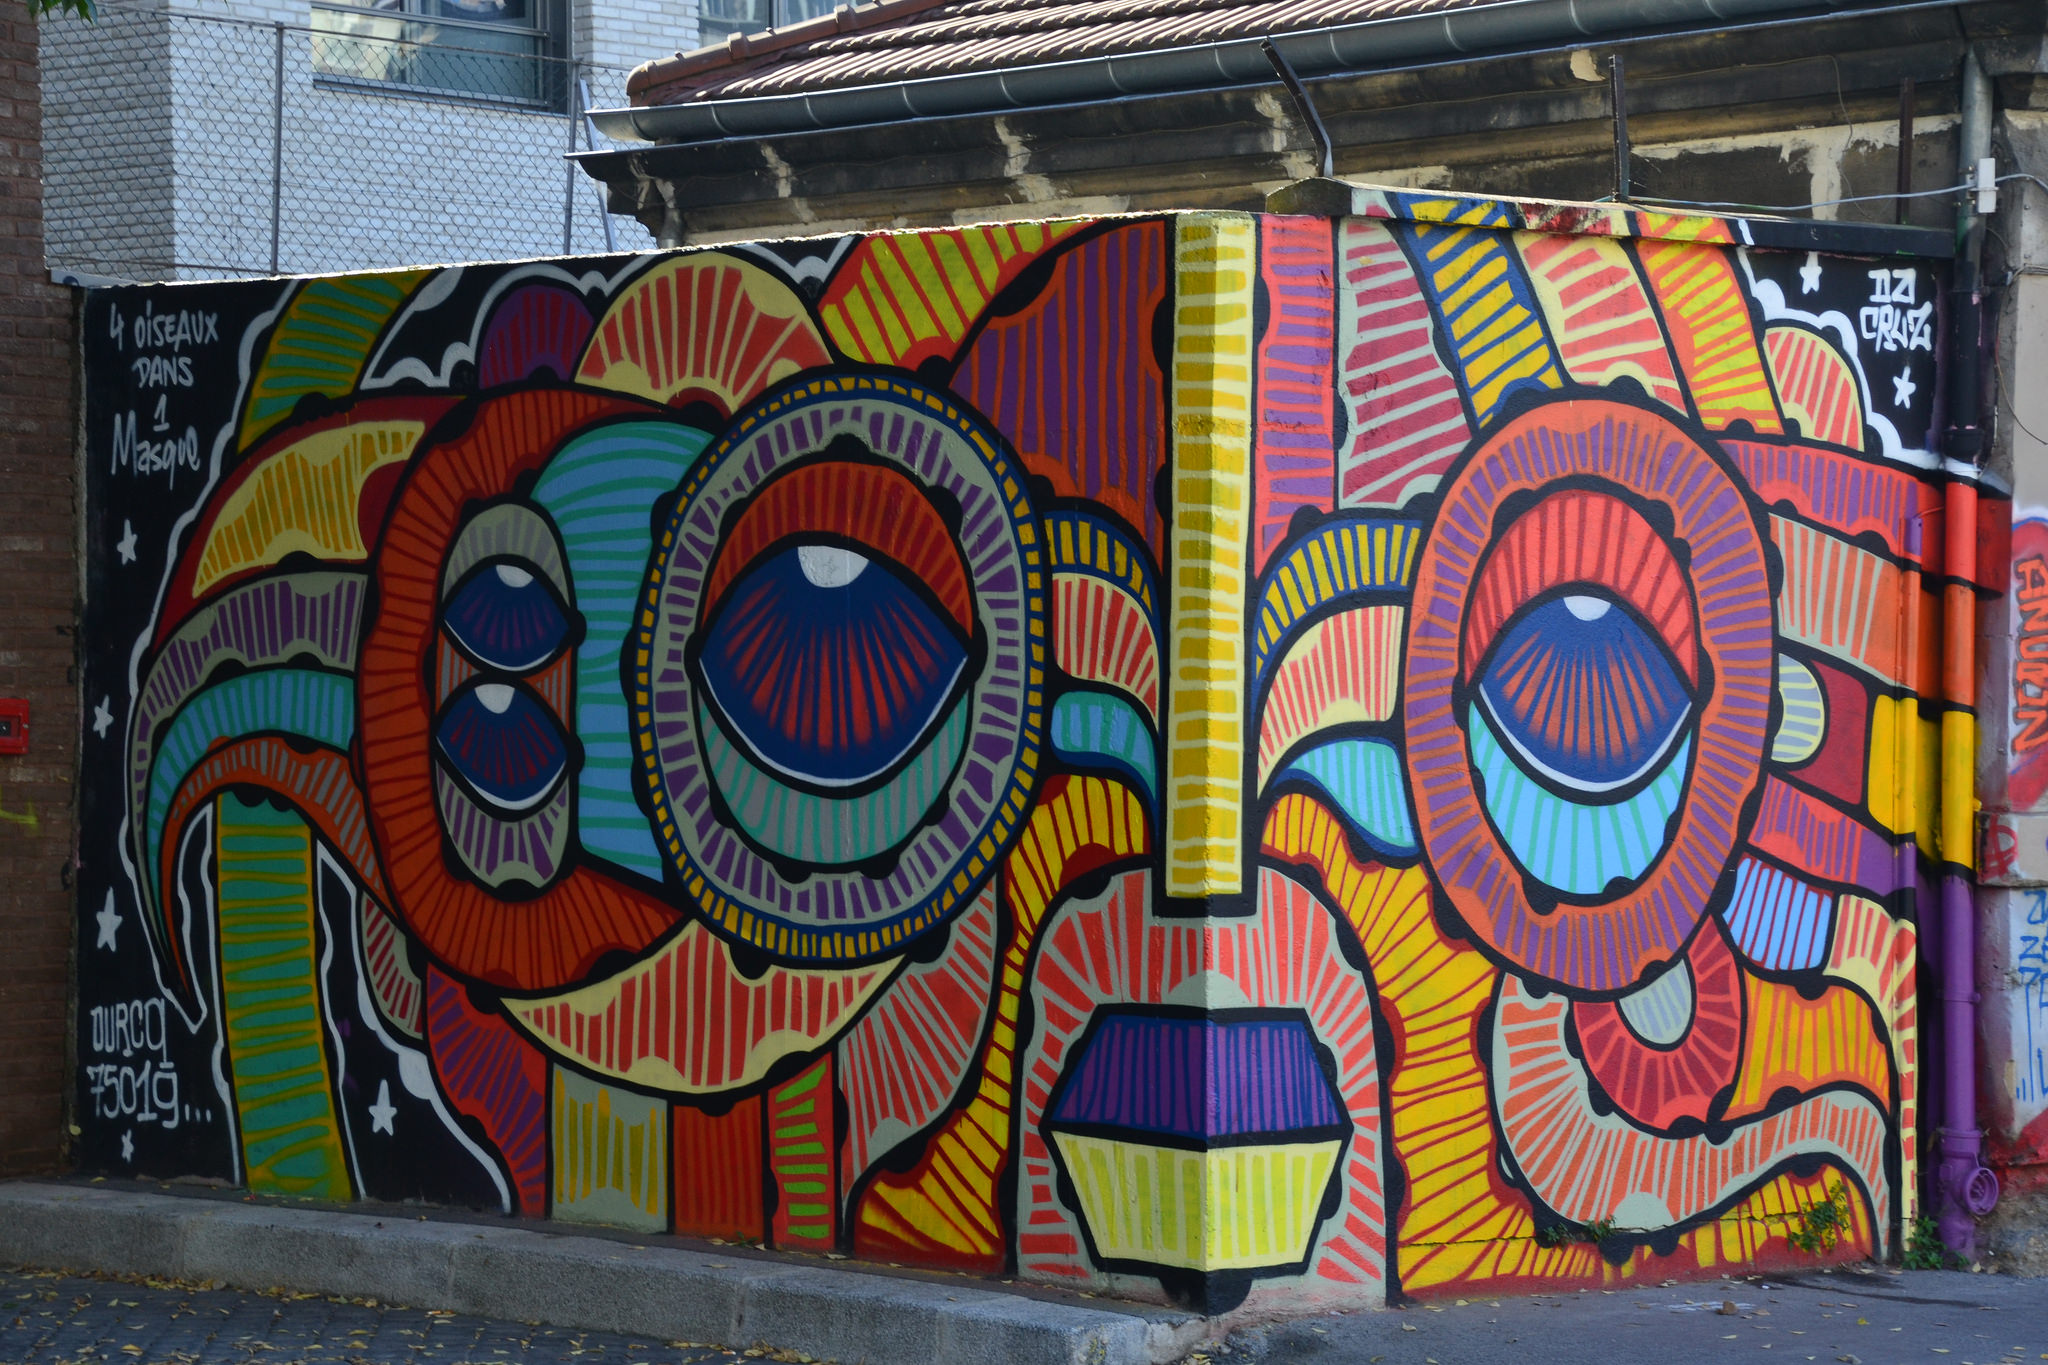 10 places to find amazing street art in paris rue de l ourcq in october 2016 pop h